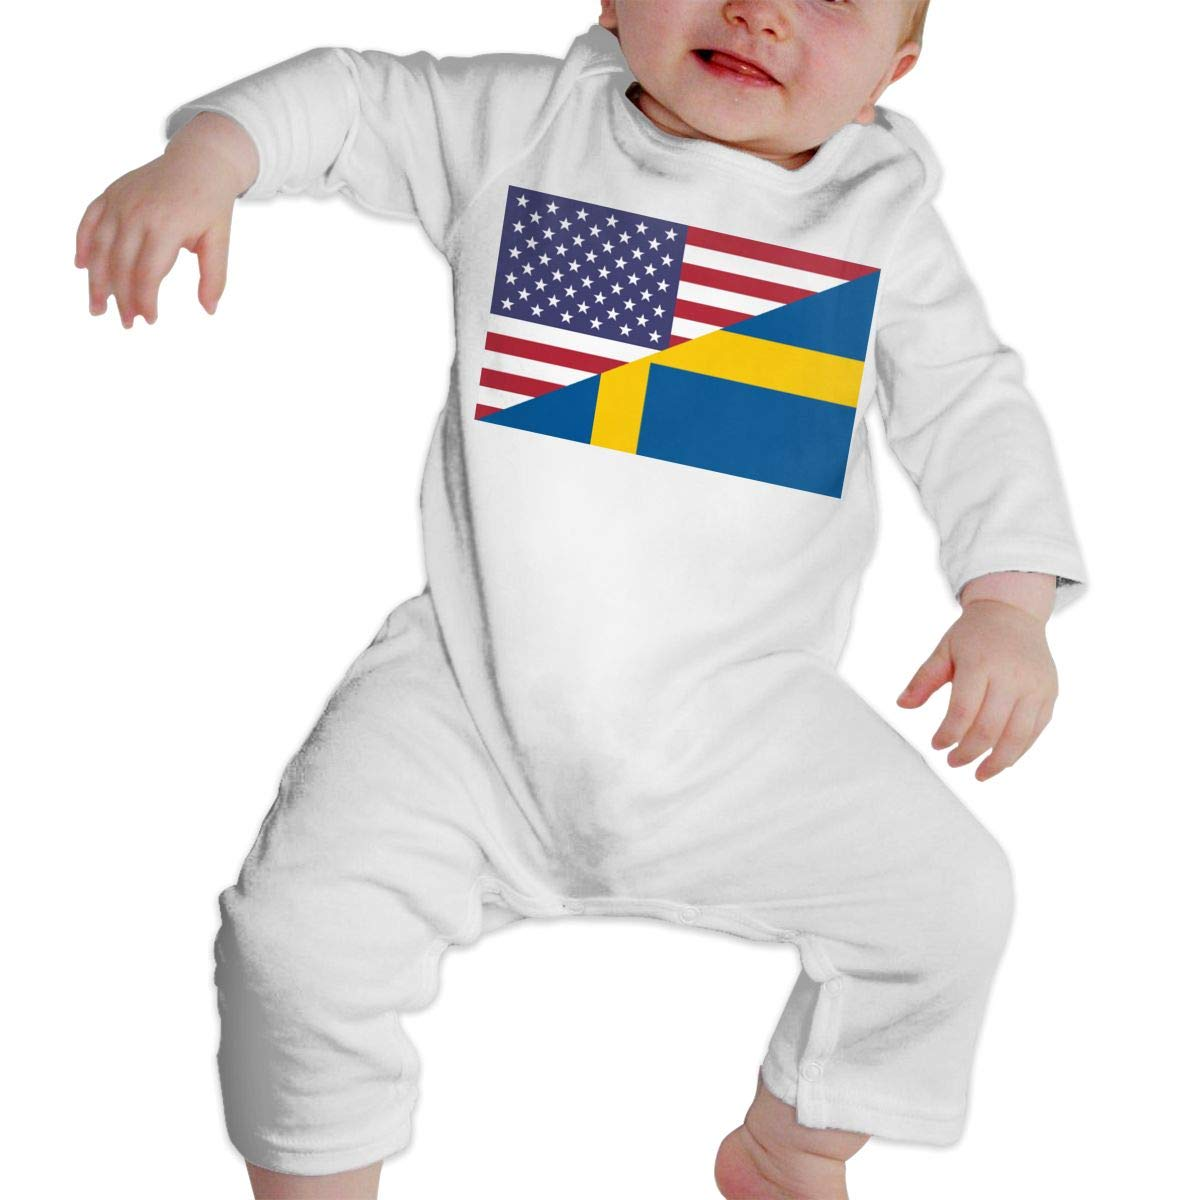 A1BY-5US Newborn Baby Boys Girls Cotton Long Sleeve Swedish American Flag Romper Bodysuit One-Piece Romper Clothes